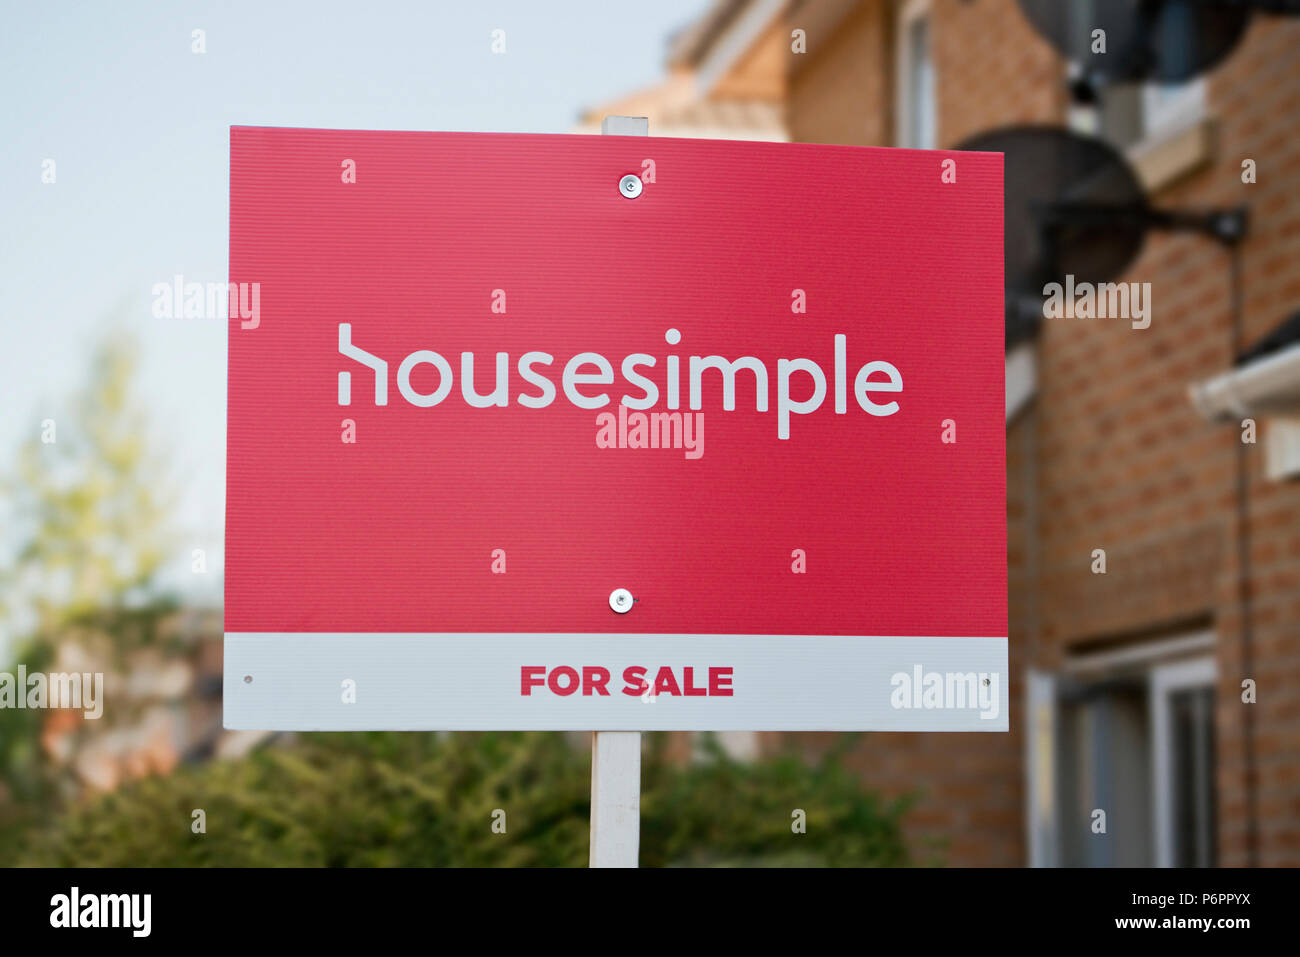 A Housesimple sign indicating a property is for sale by the online estate agents. - Stock Image